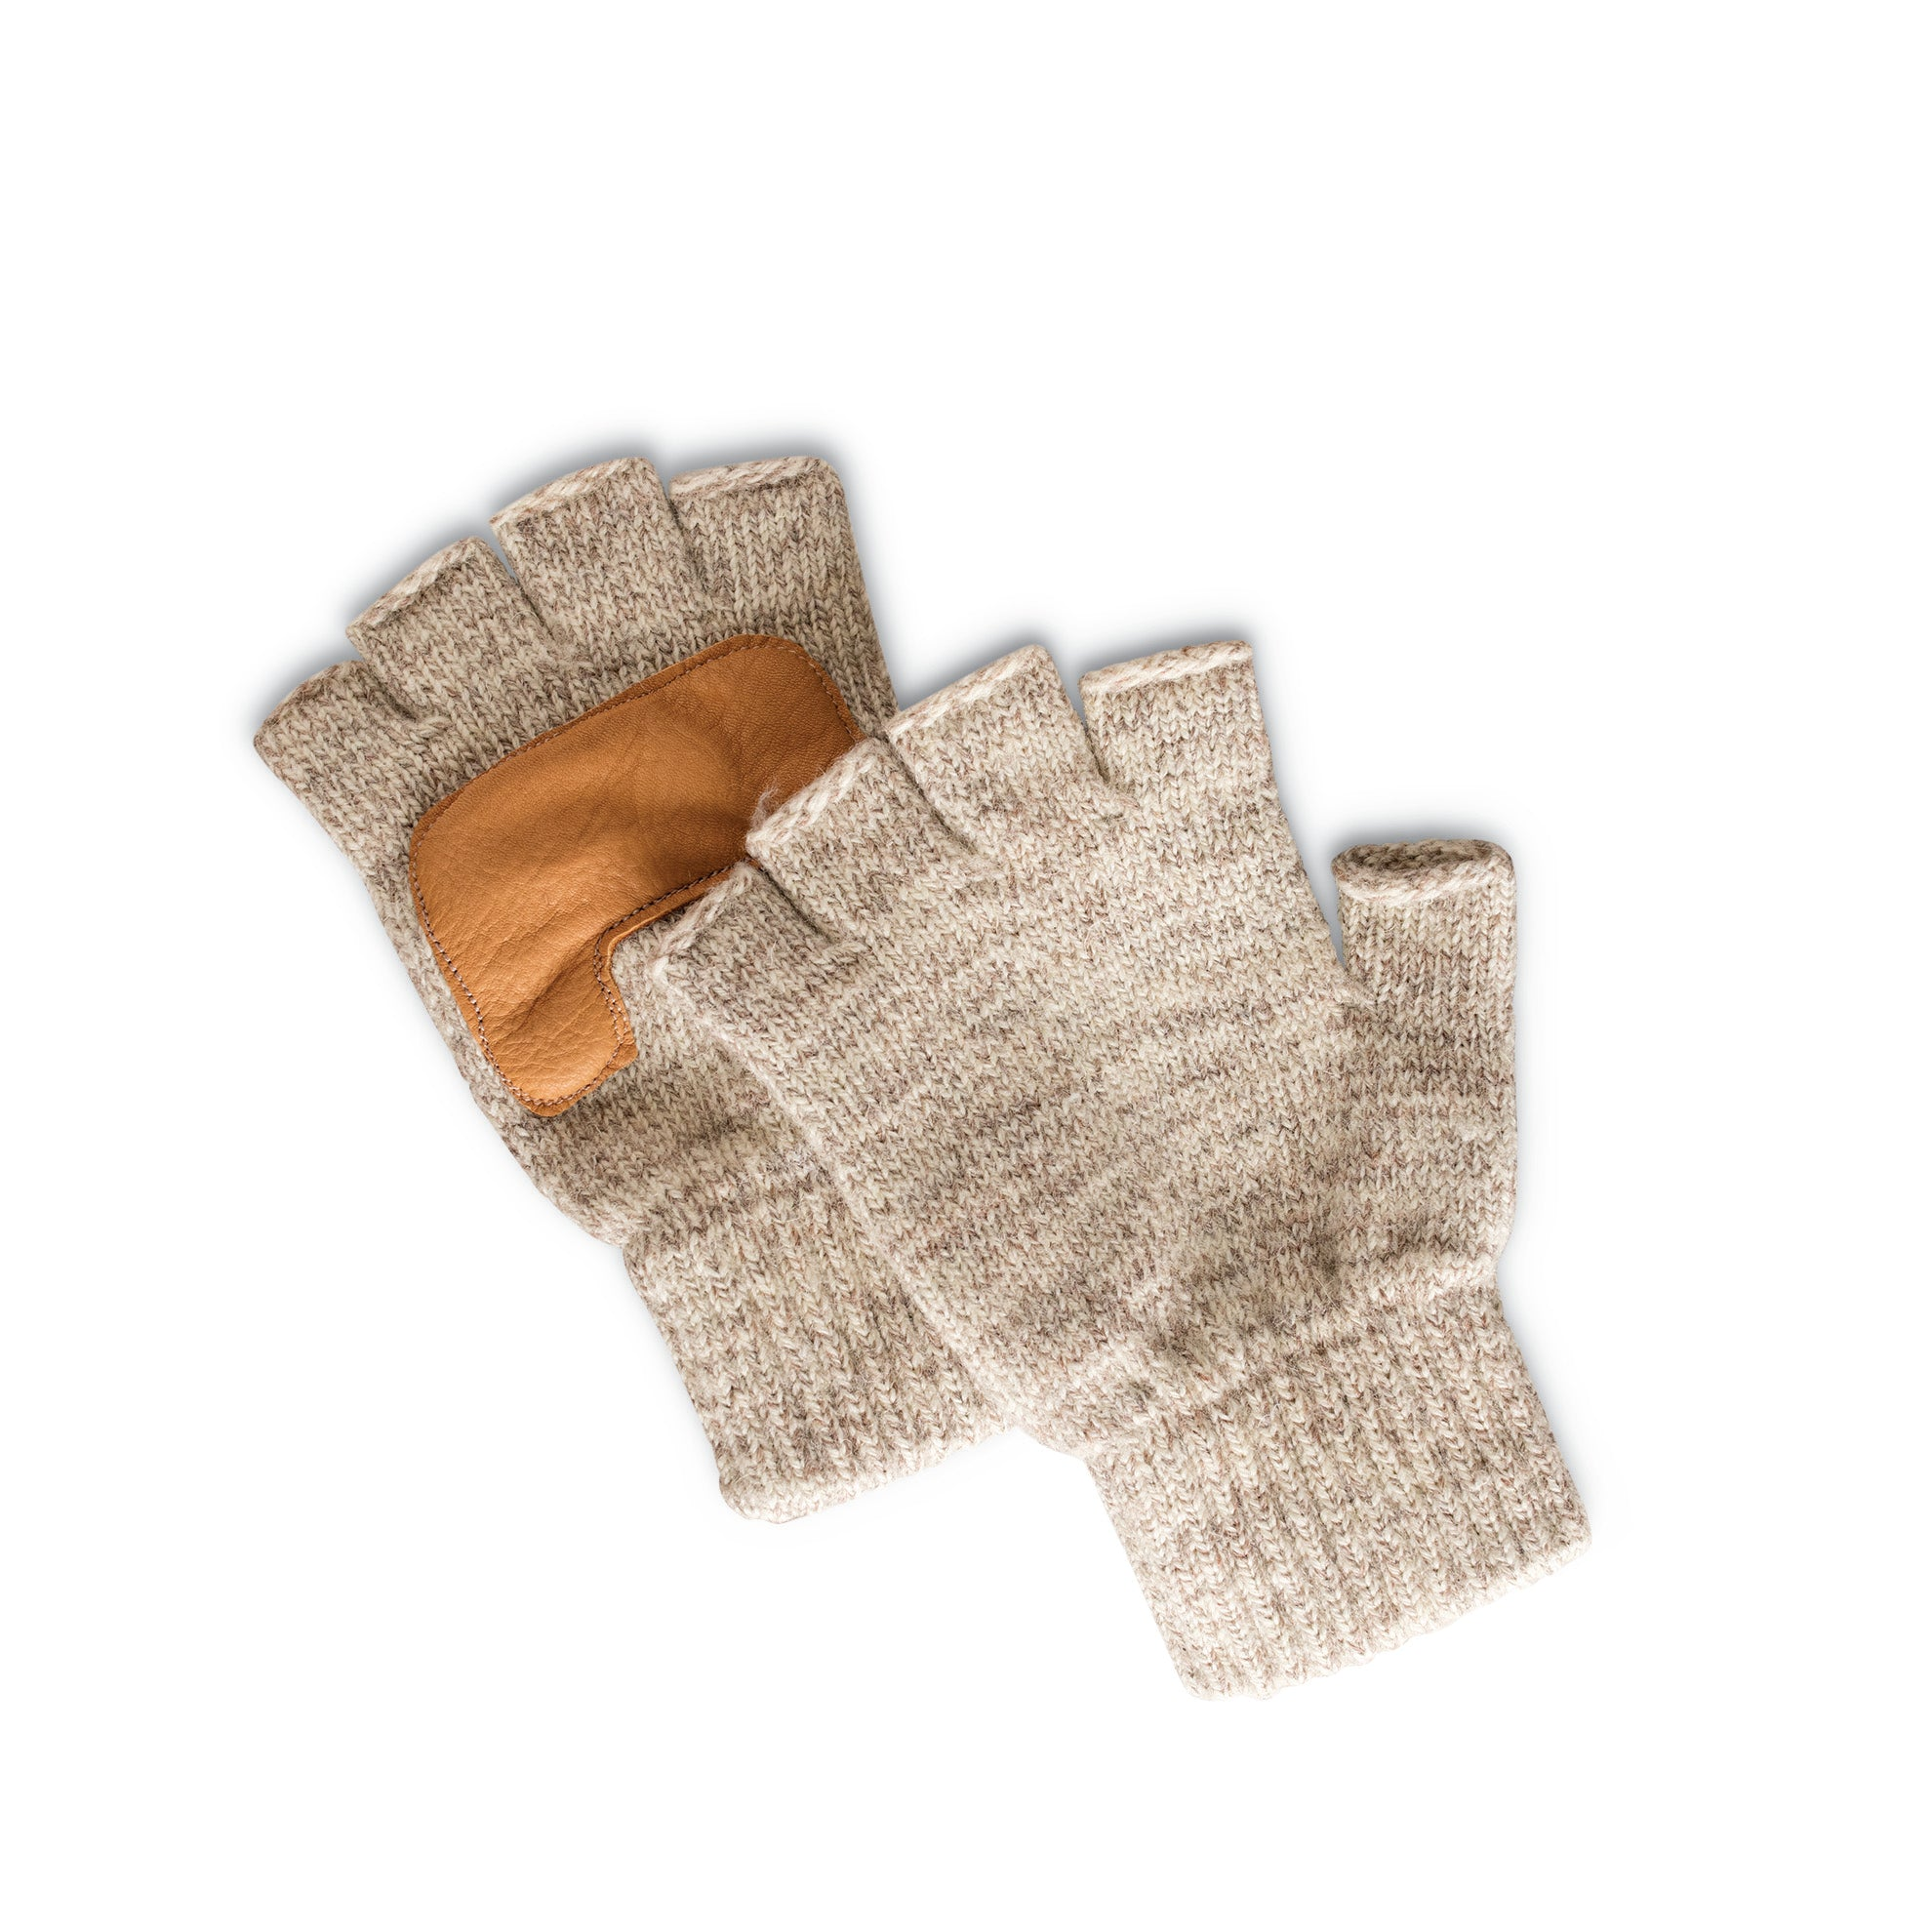 Adirondack Ragg Wool Fingerless Gloves - Women's